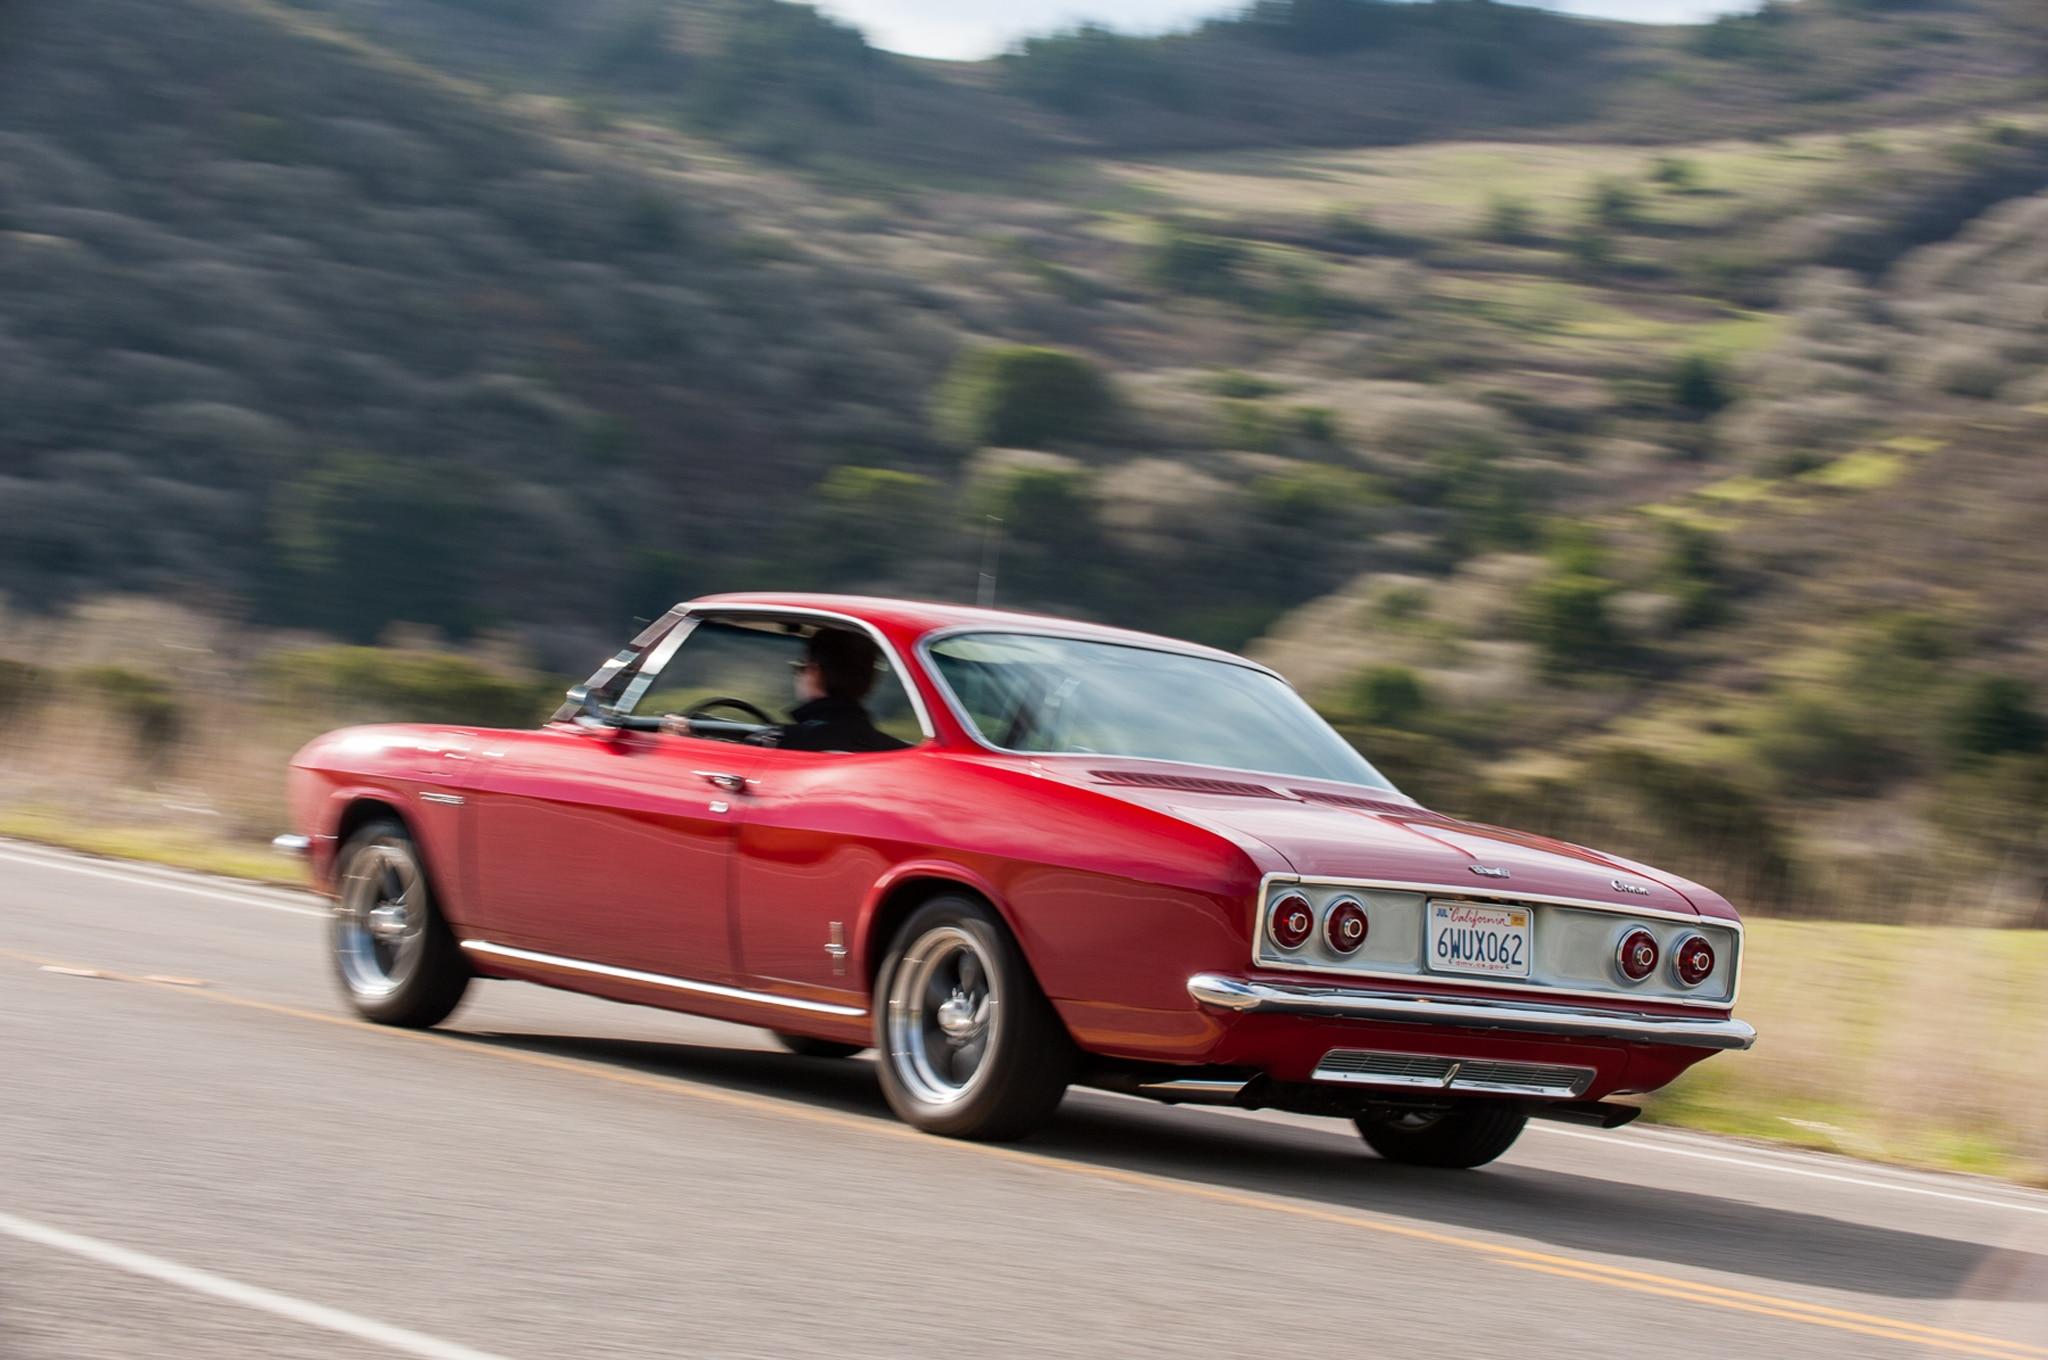 Collectible Classic: 1960-1969 Chevrolet Corvair